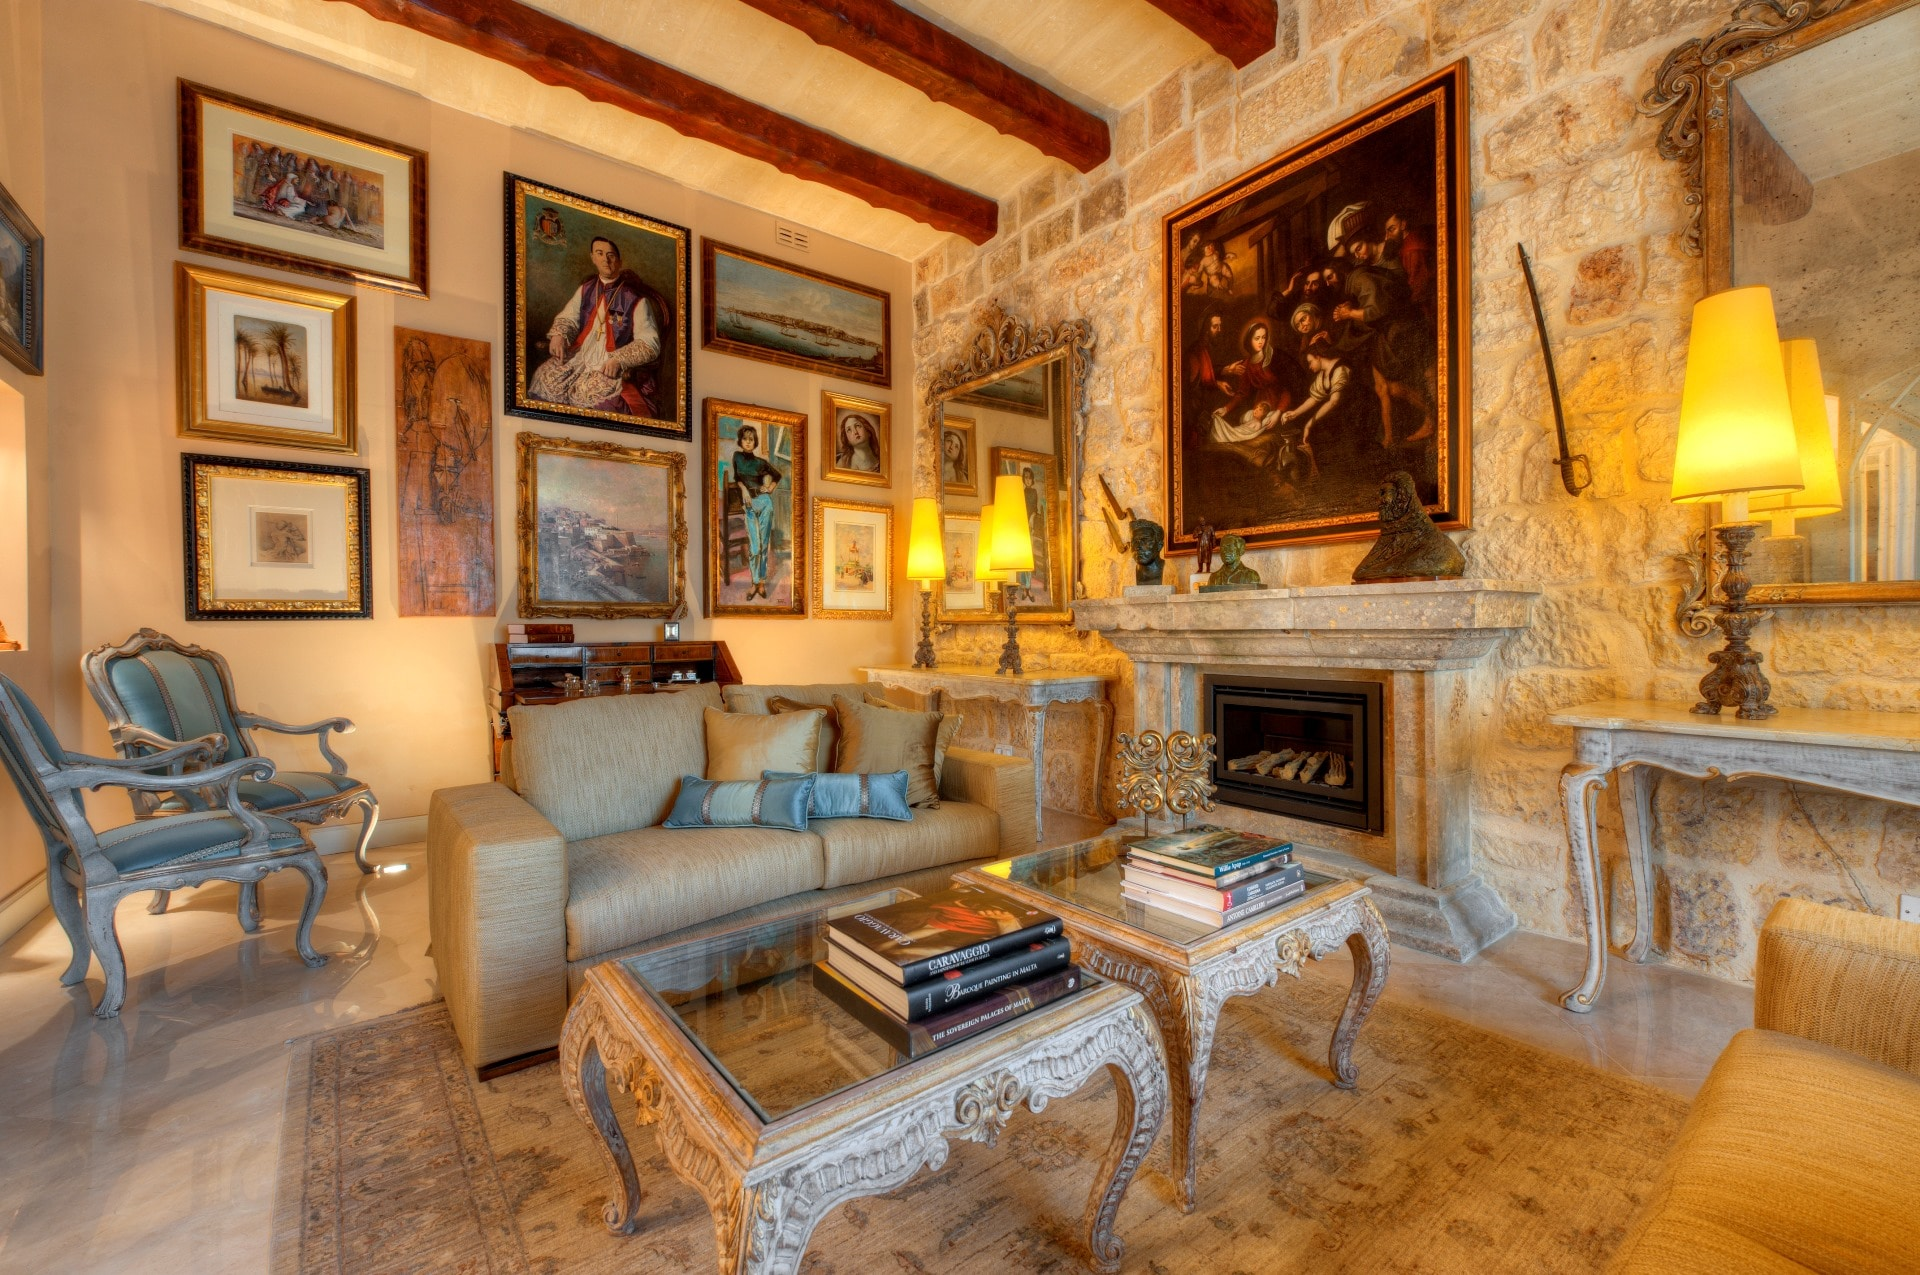 Entertainment Room – rustic stone fireplace, low sofas, antique gold, marble flooring